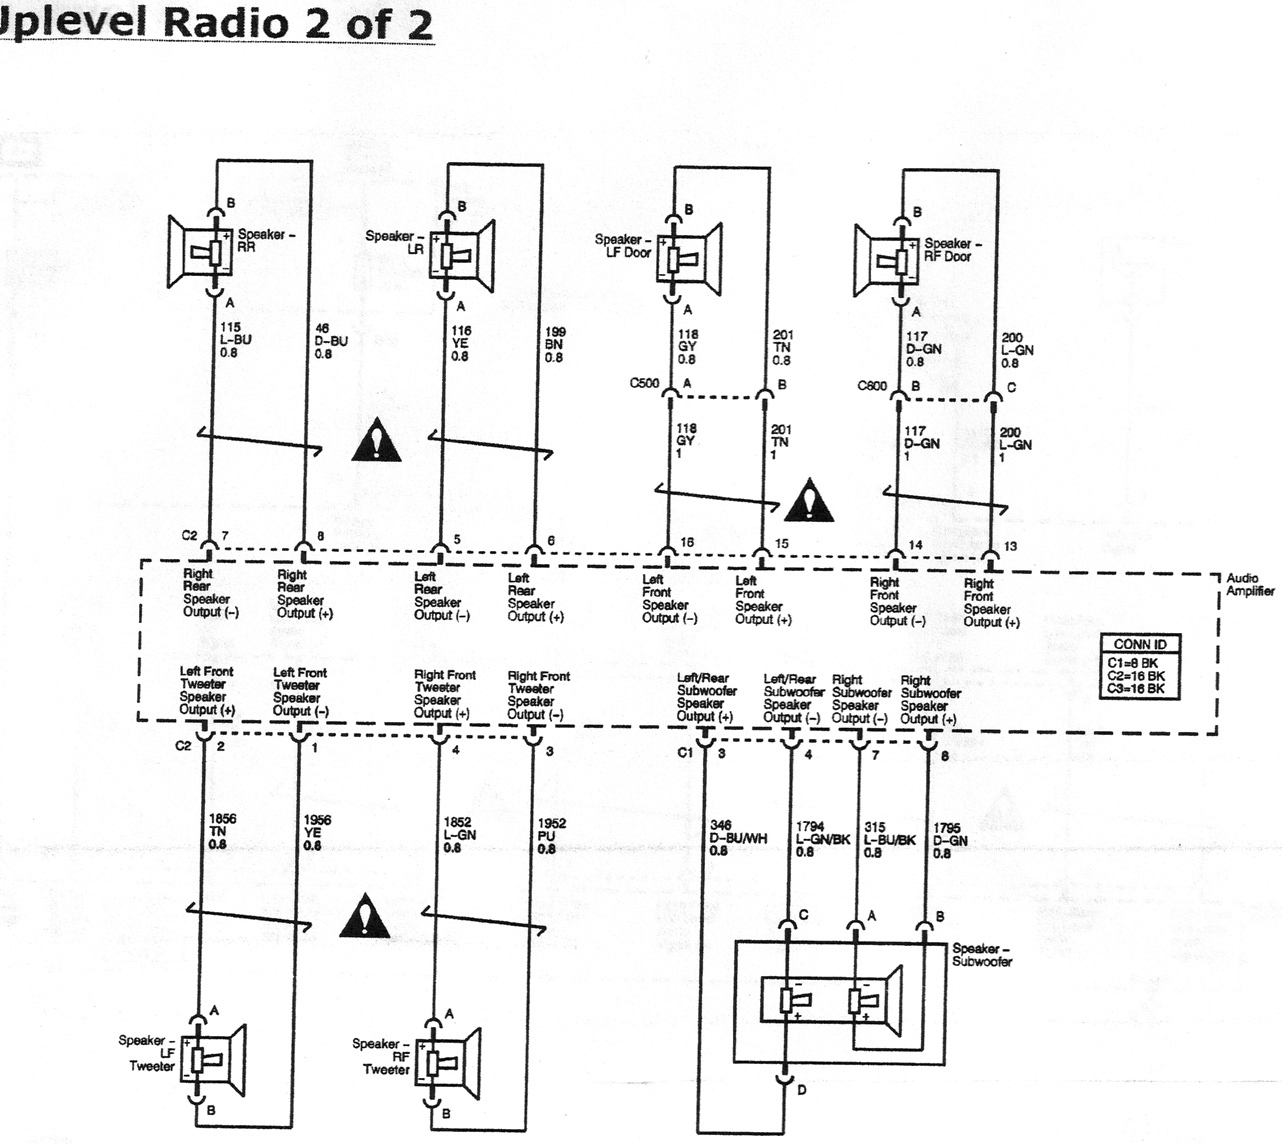 monsoon wiring question saturn sky forums saturn sky forum on 1969 Camaro Wiring Diagram for monsoon wiring question monsoon_wiring_diagram_page_2 jpg at 04 gto radio wiring diagram